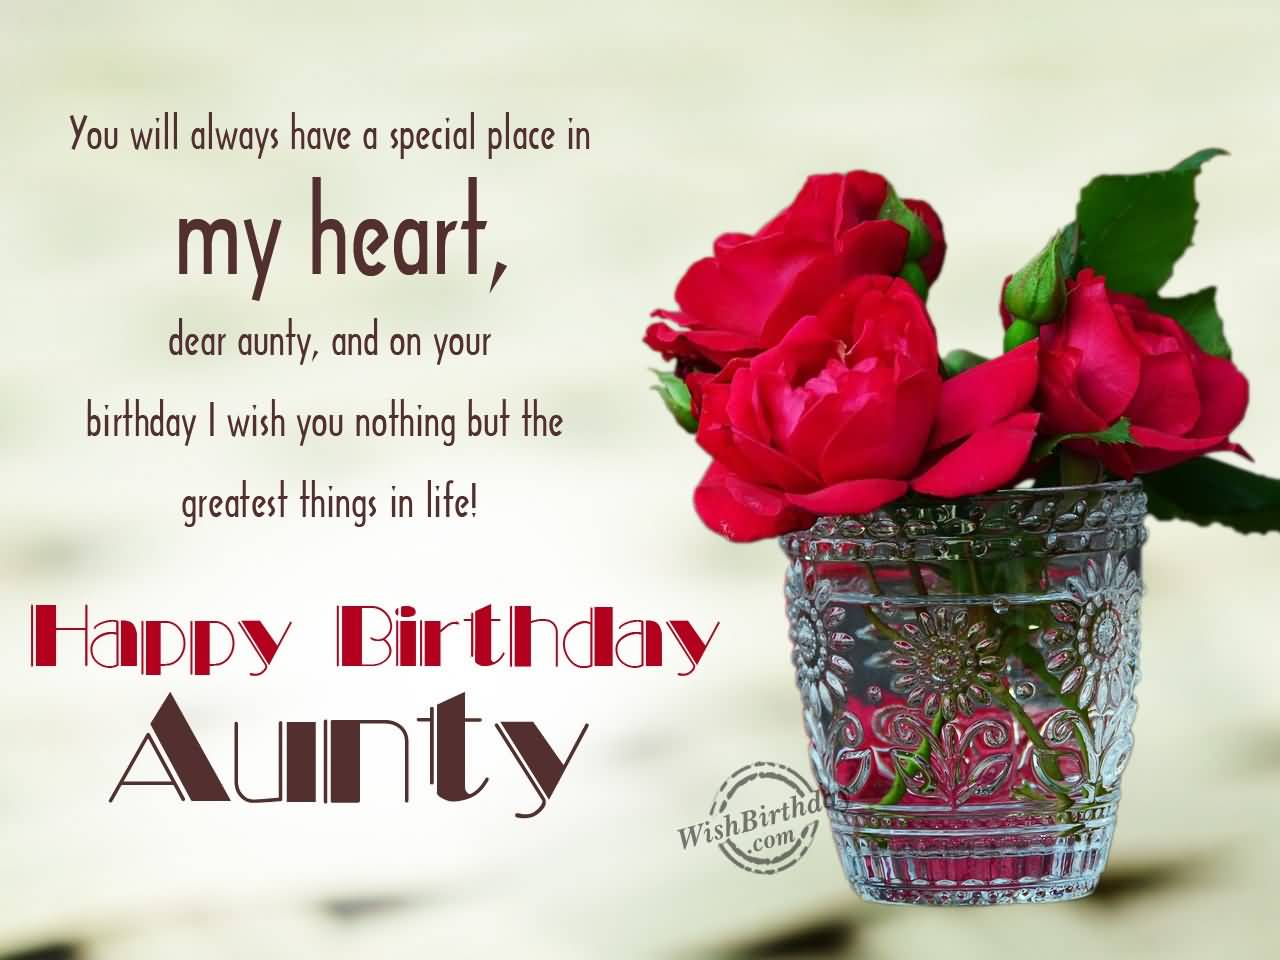 You always have a special place Happy Birthday Aunt attractive message wish with roses